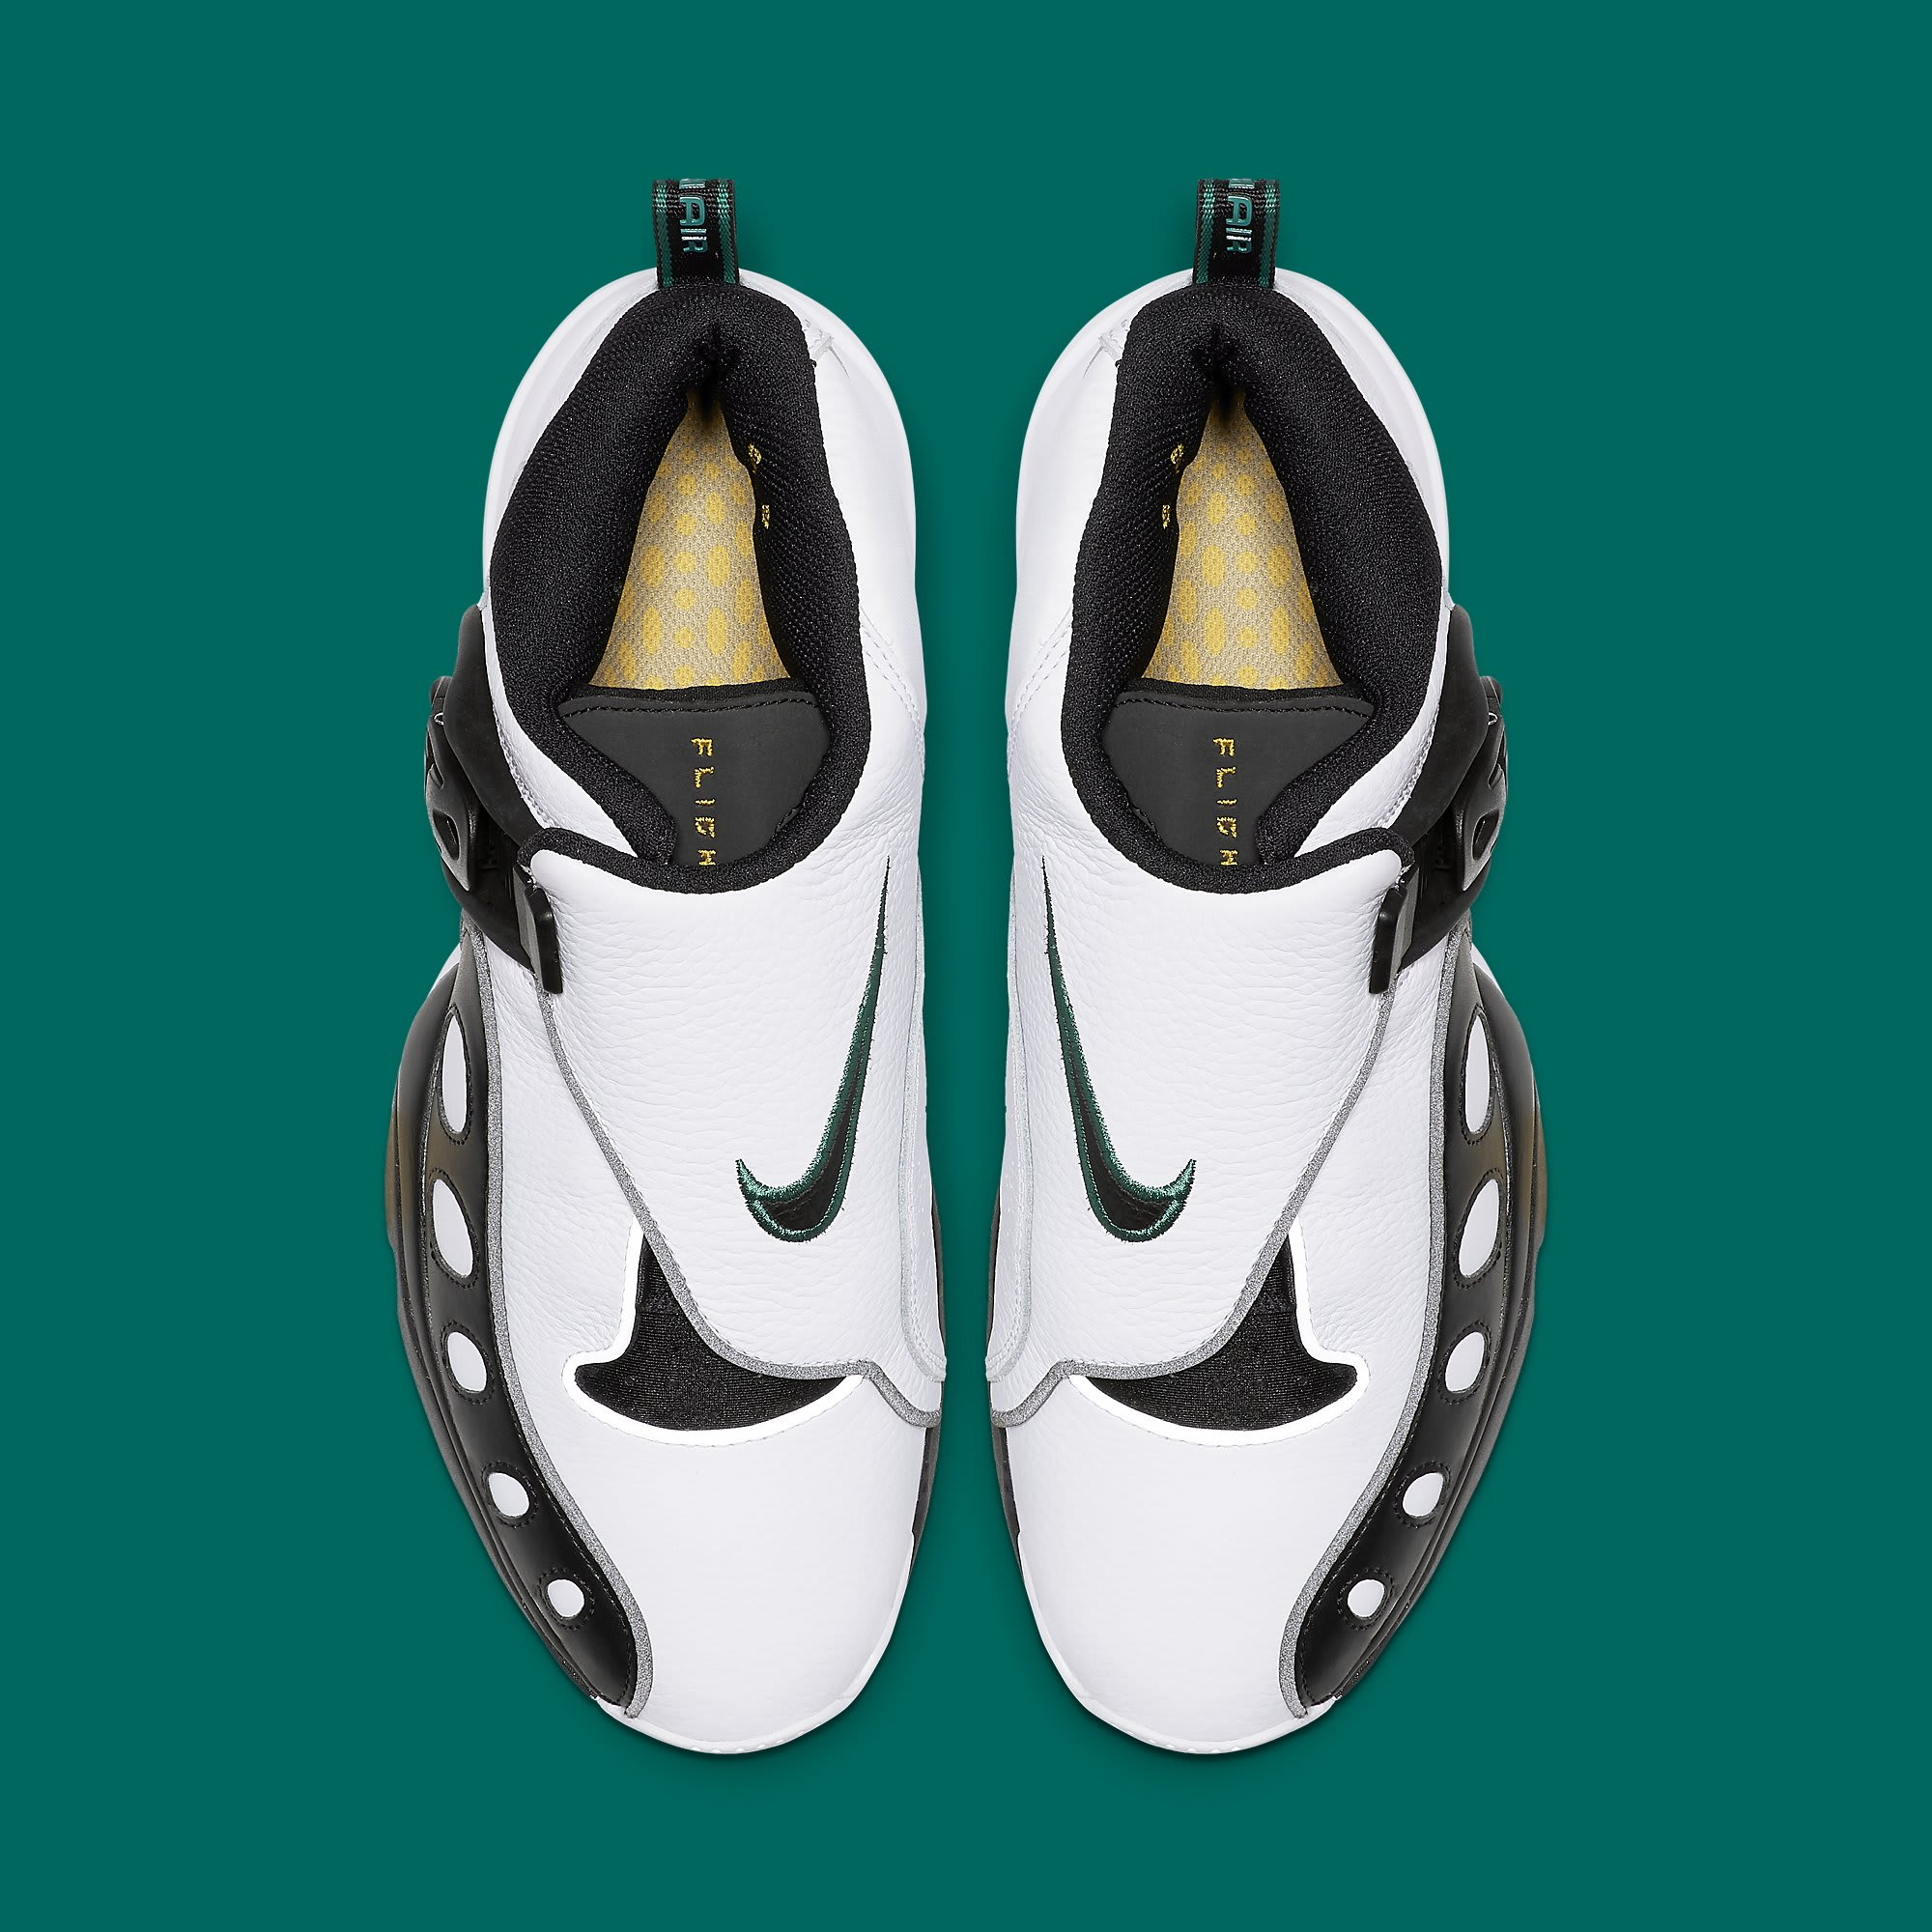 Nike Zoom GP White Black Release Date AR4342-100 Top